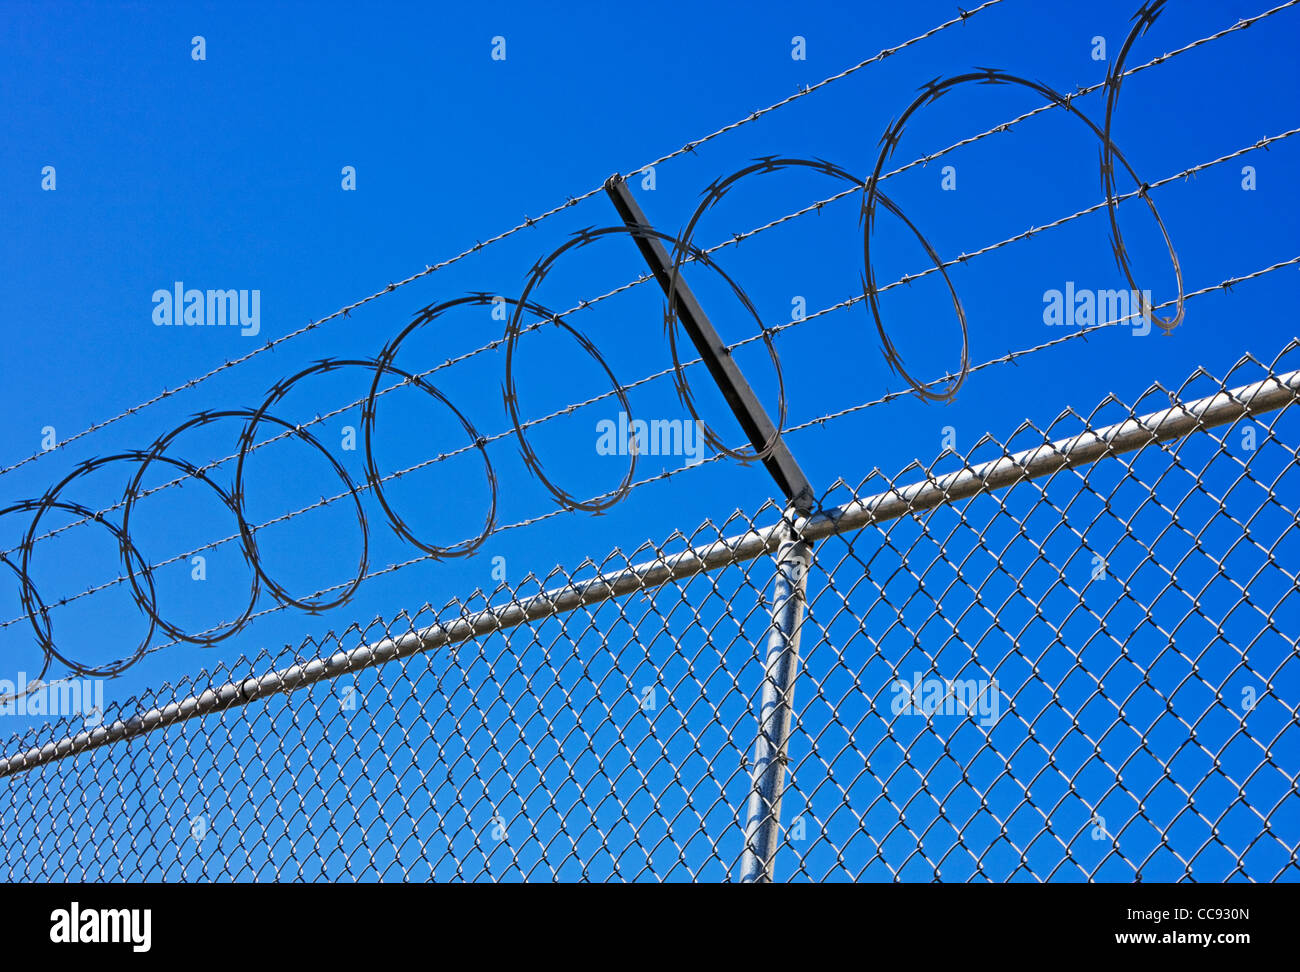 barbed wire and chain link fence - Stock Image